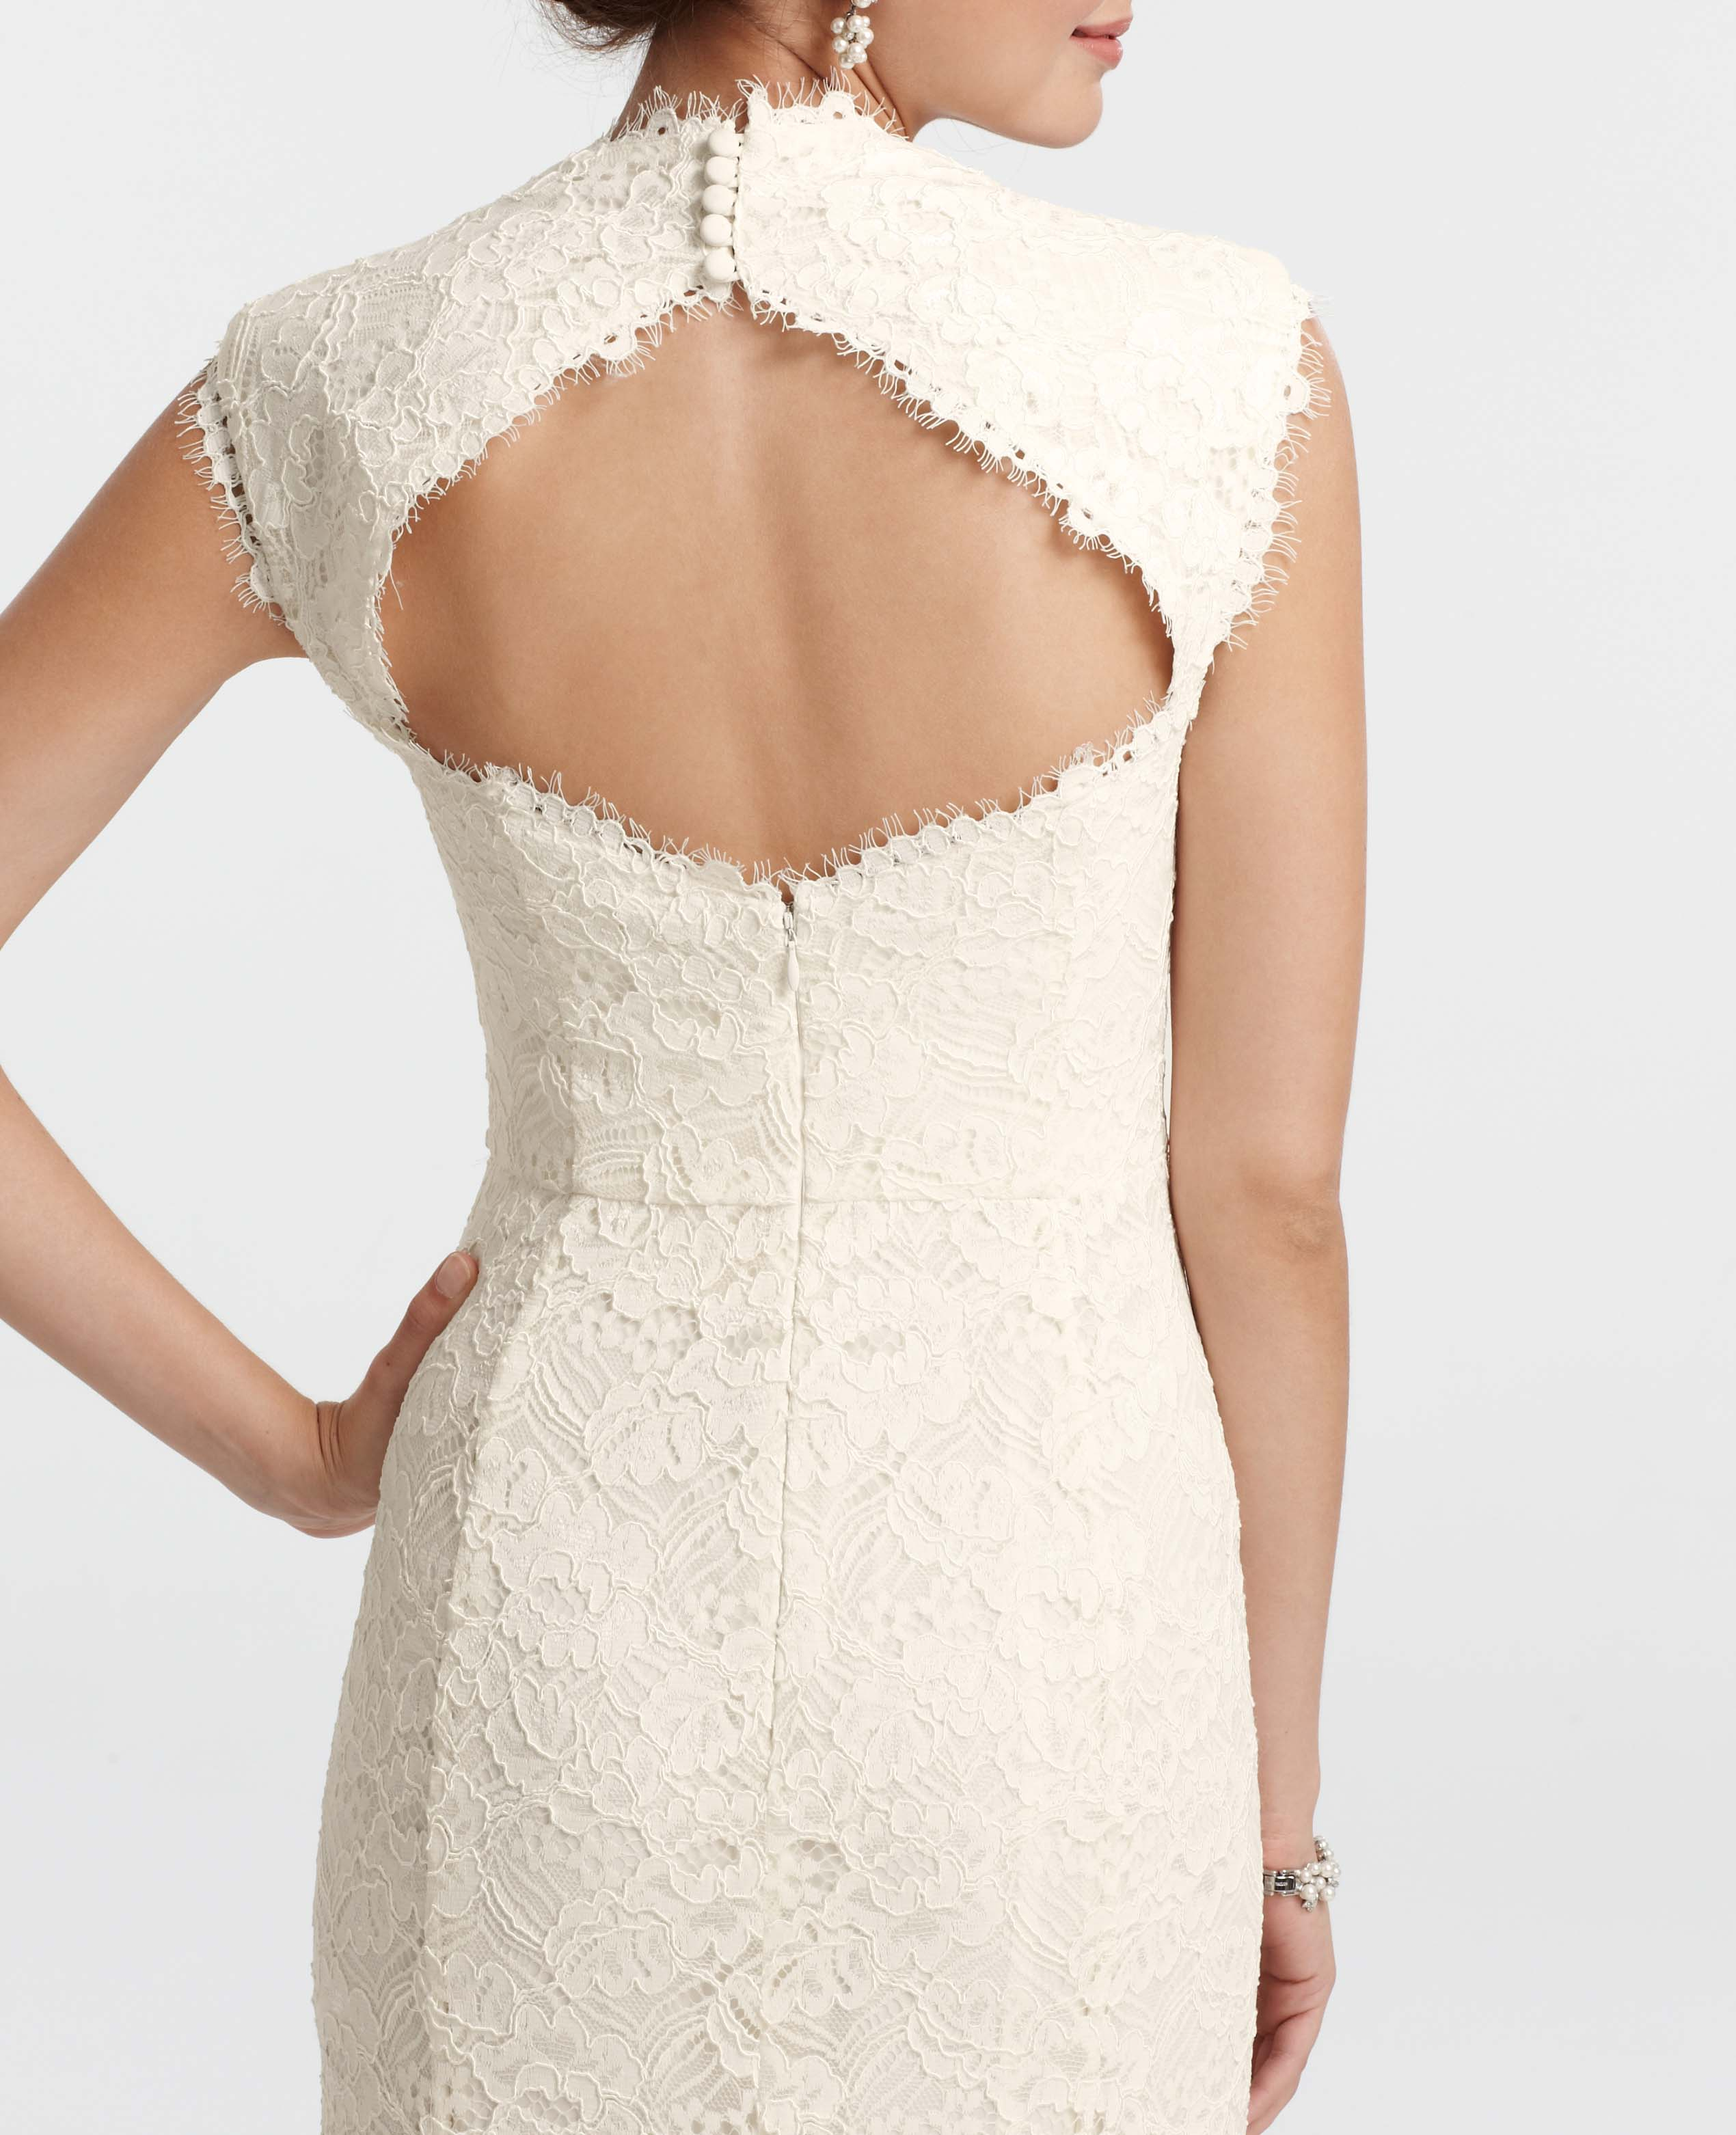 Ann taylor petite isabella lace wedding dress in white lyst for Petite lace wedding dresses